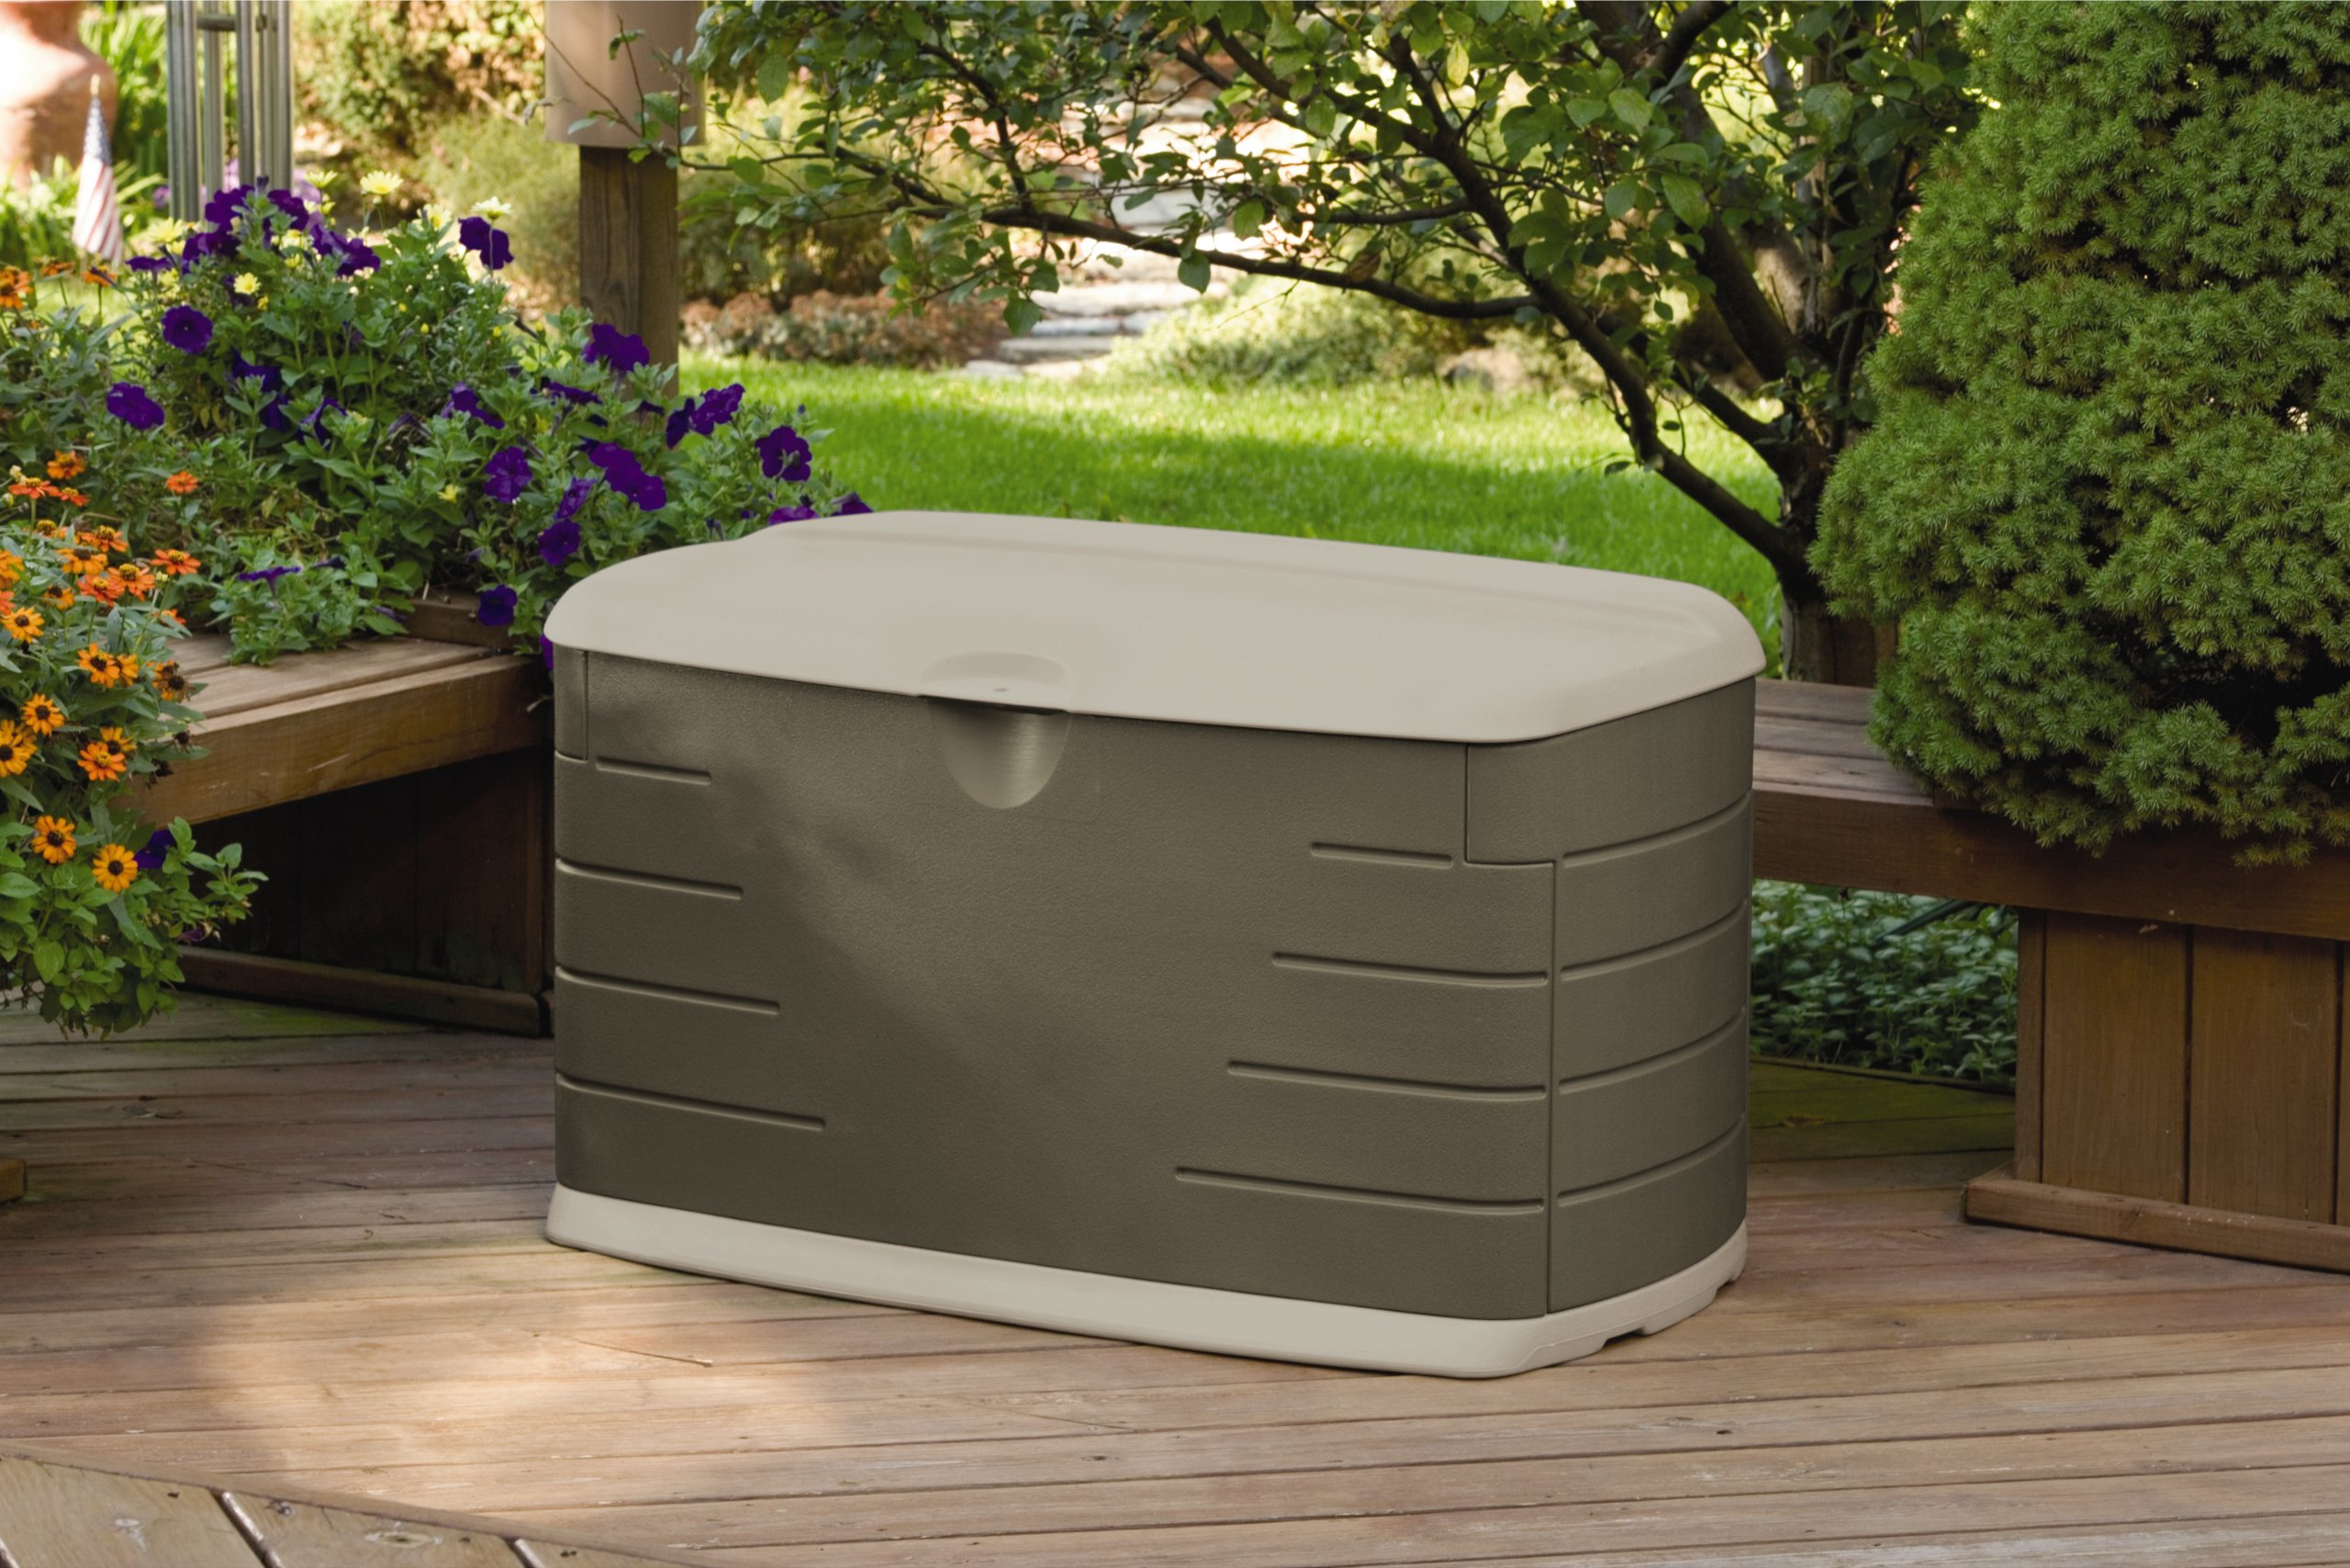 Rubbermaid Outdoor Deck Box With Seat, Medium, 46'' L x 24'' W x 24'' H (2047053)